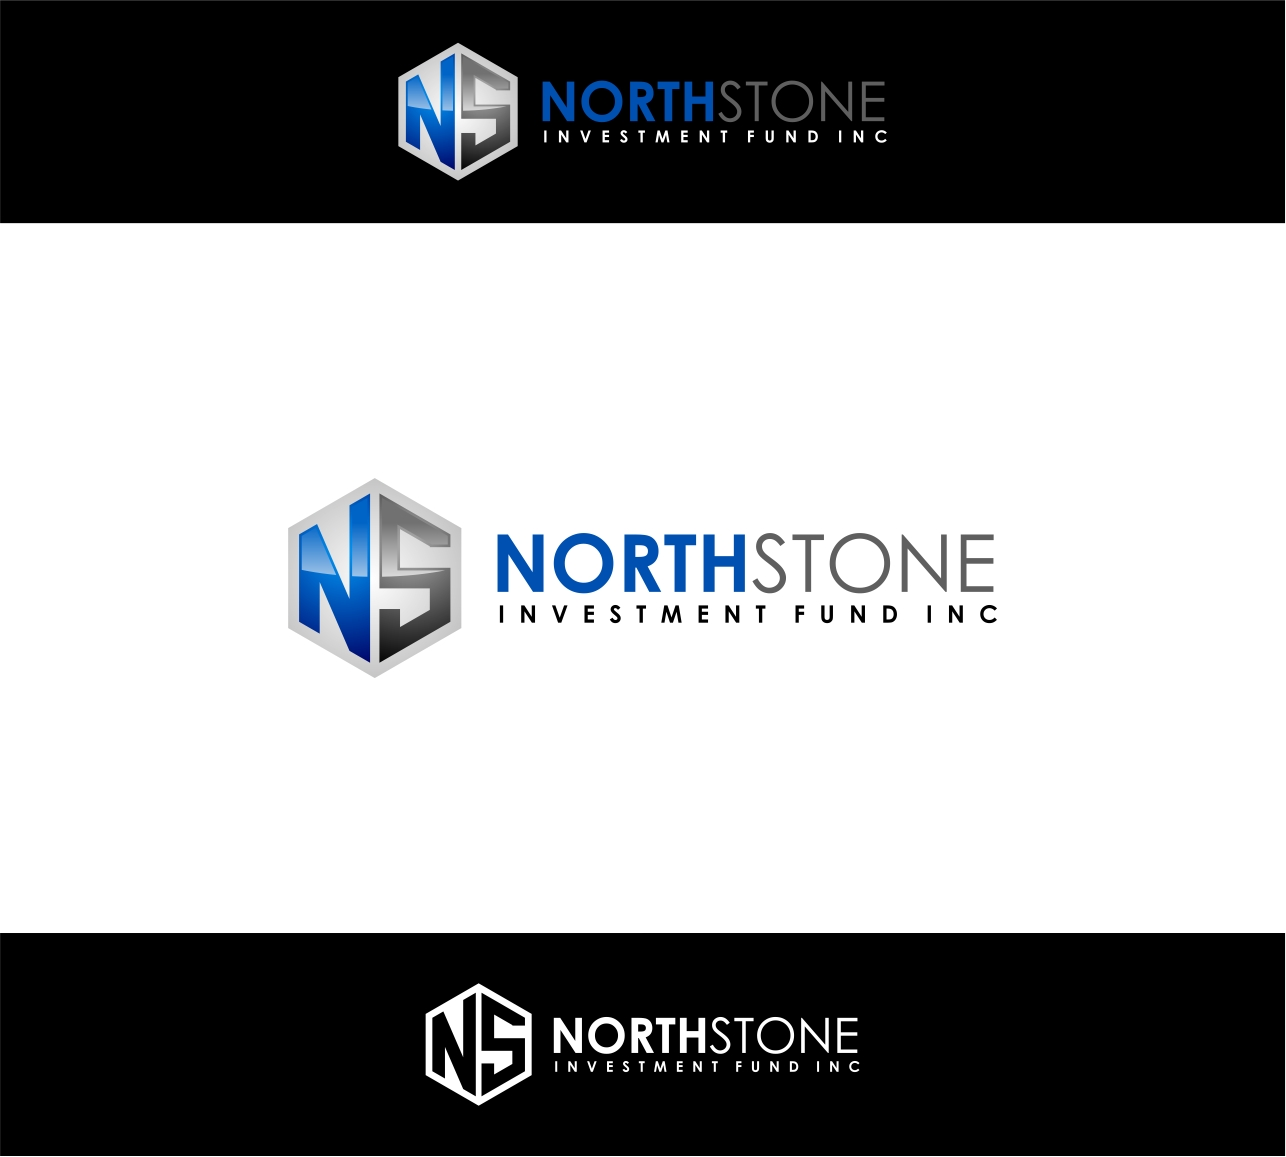 Logo Design by haidu - Entry No. 82 in the Logo Design Contest Unique Logo Design Wanted for NorthStone Investment Fund Inc.